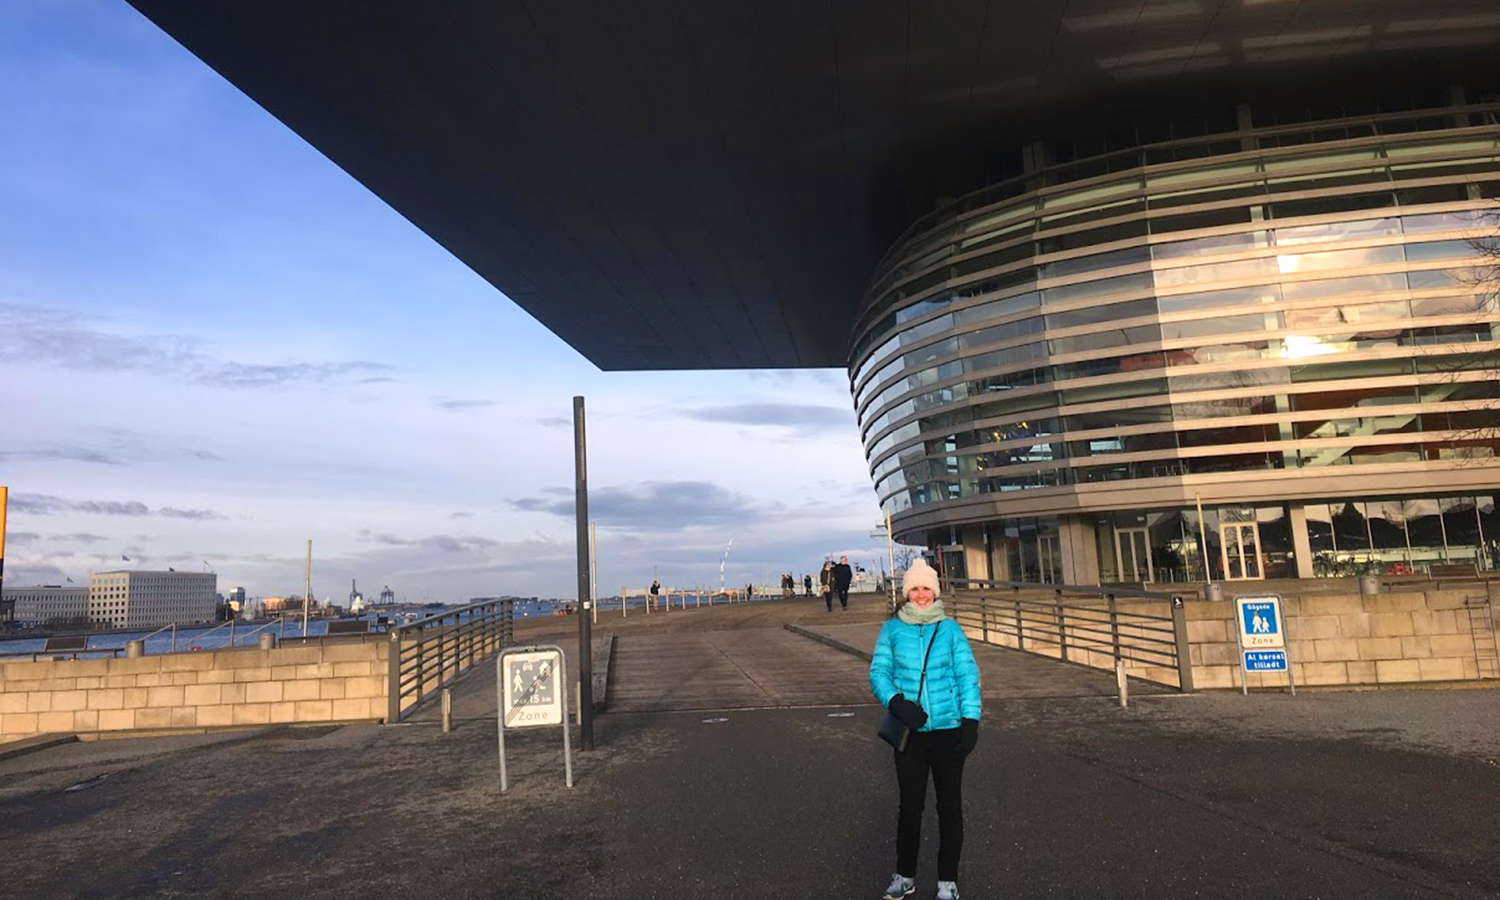 Erika Ireland '19 poses in front of the Copenhagen Opera House in Copenhagen, Denmark as part of her Student International Initative Fund grant given by the Center for Global Education.